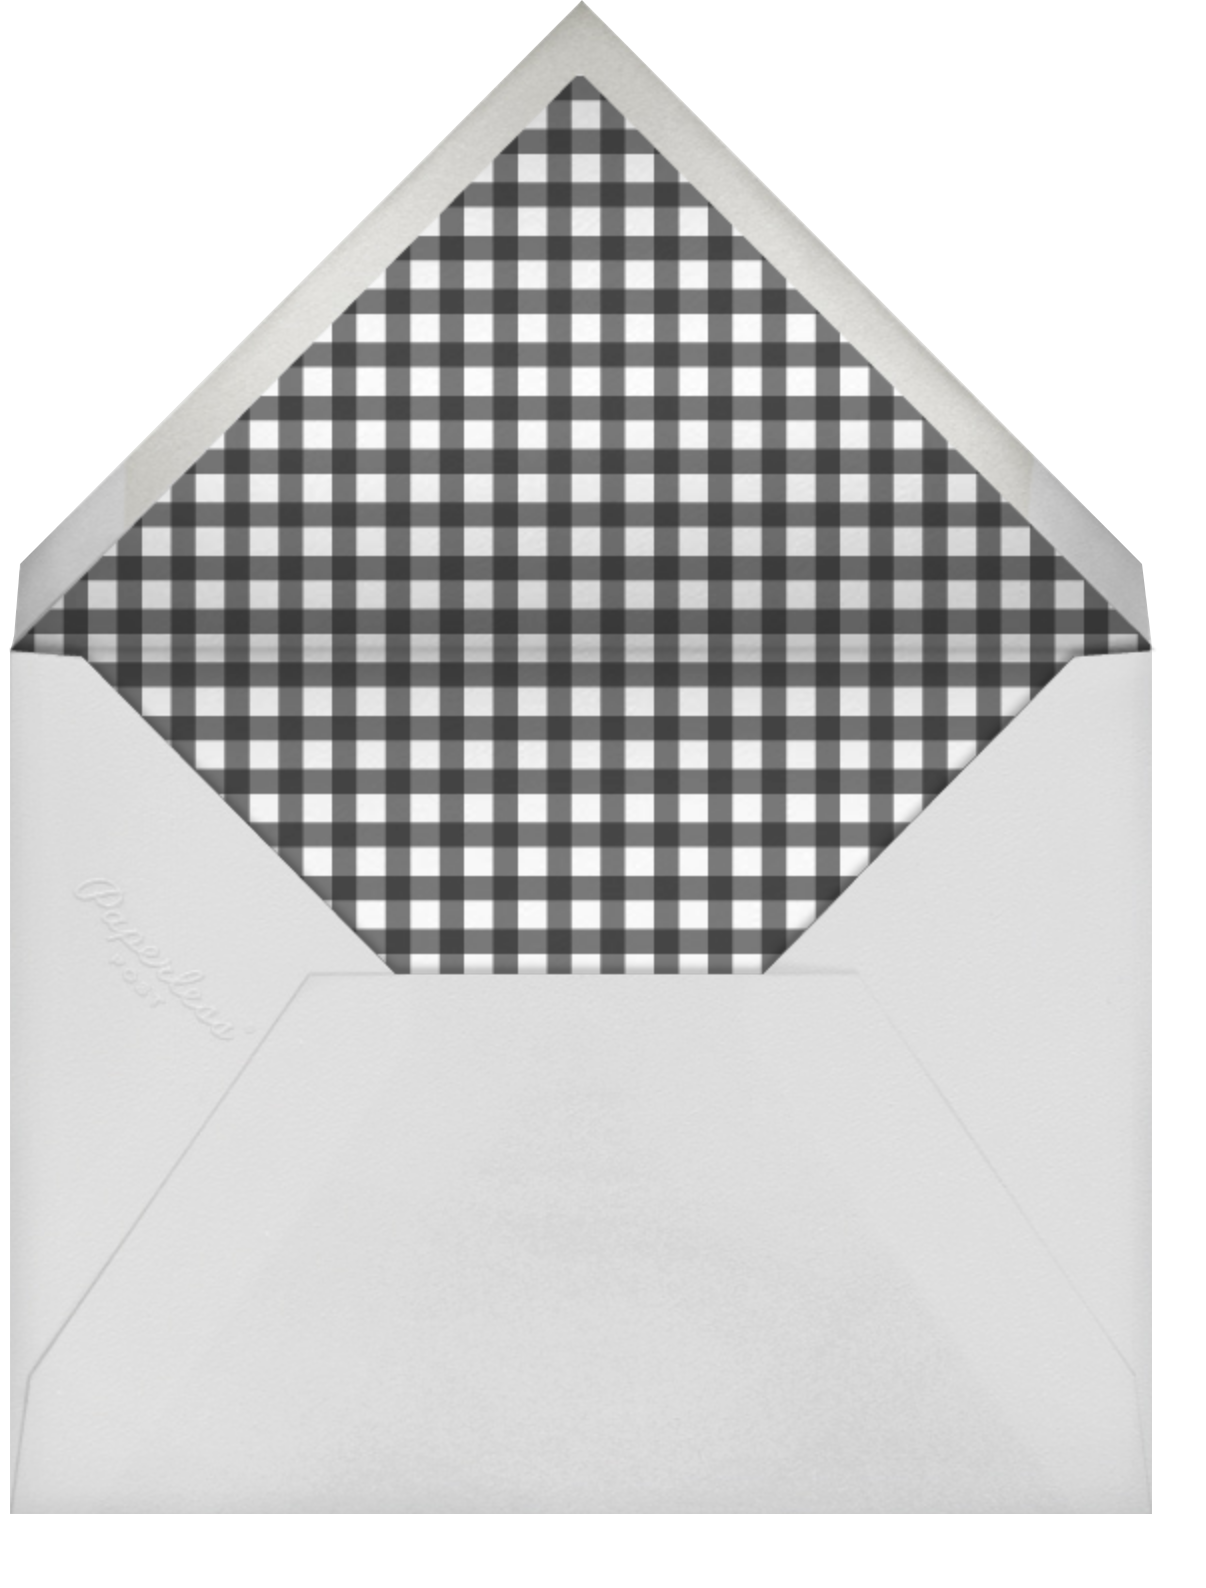 Quadrata - Gold - Paperless Post - Graduation - envelope back